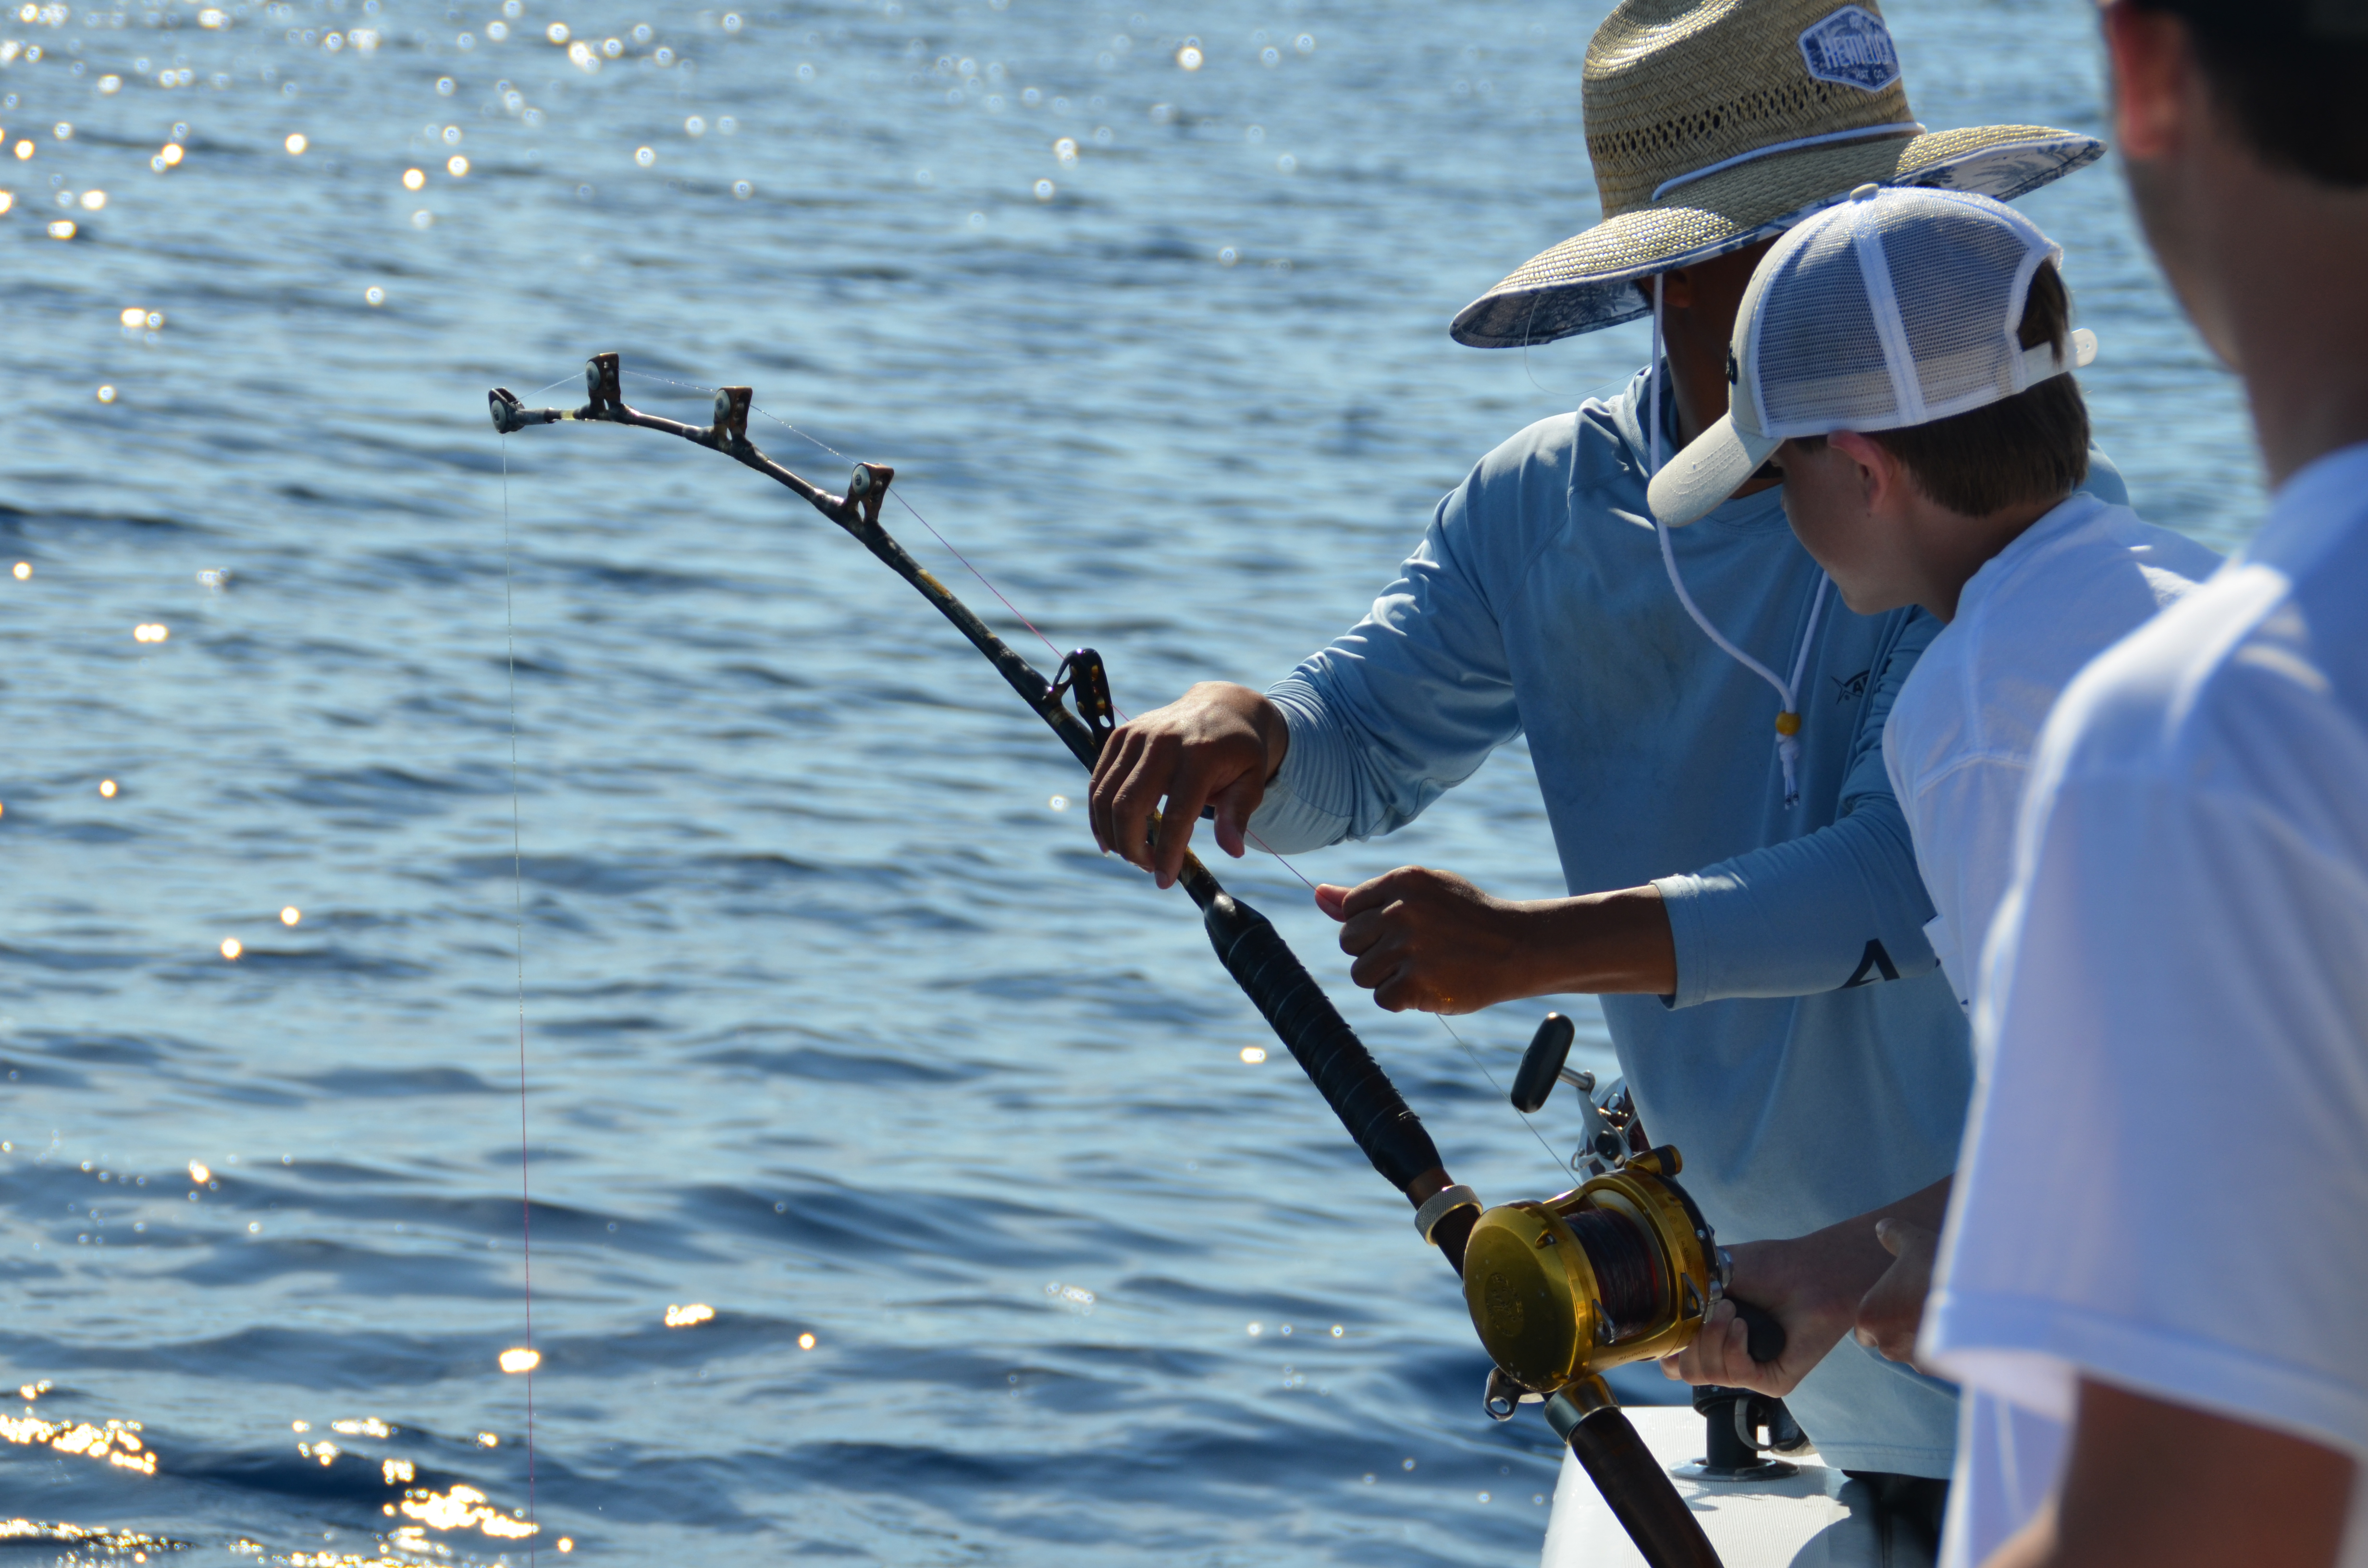 Three anglers on a boat with a fishing rod that's bending and looks to have a fish on.